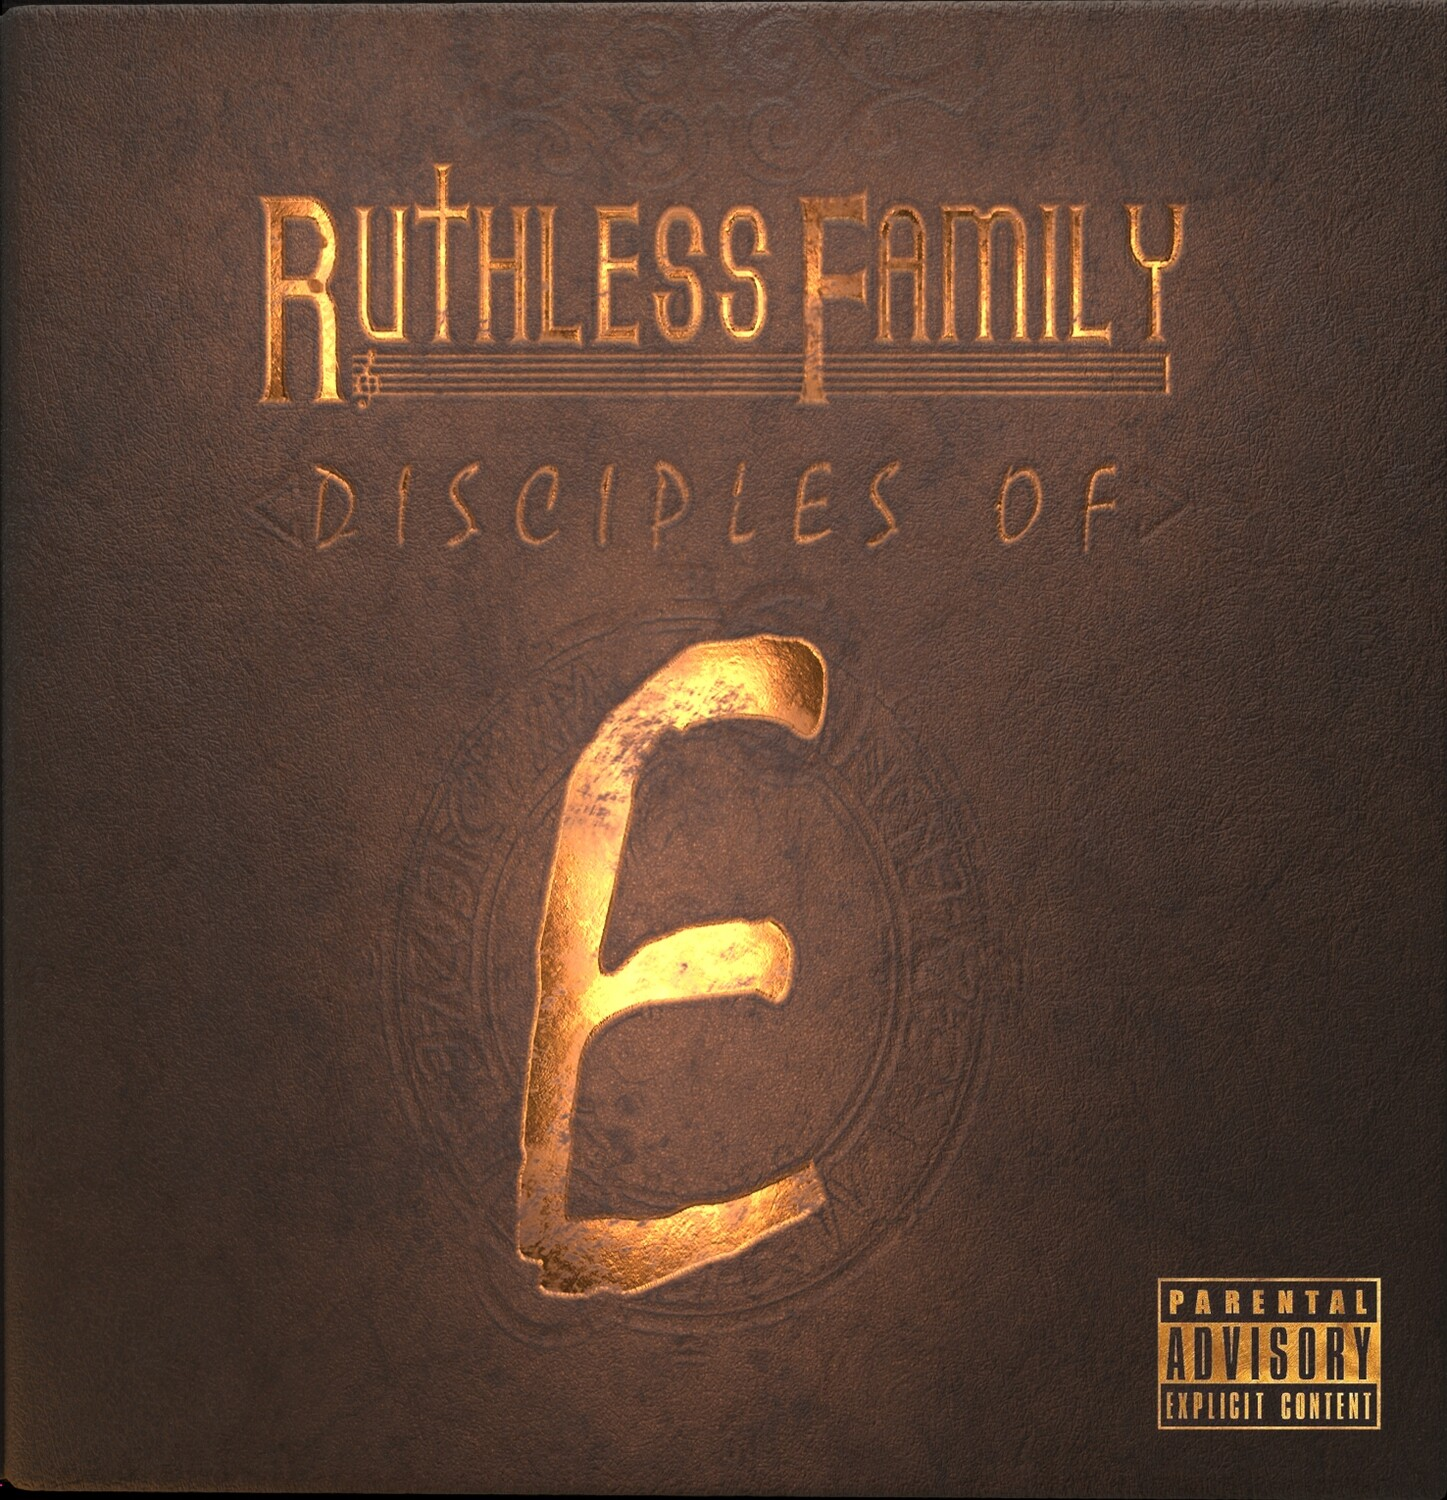 Ruthless Family : Disciples of E  (CD) Limited Quantity #eazye #ruthlessfamily